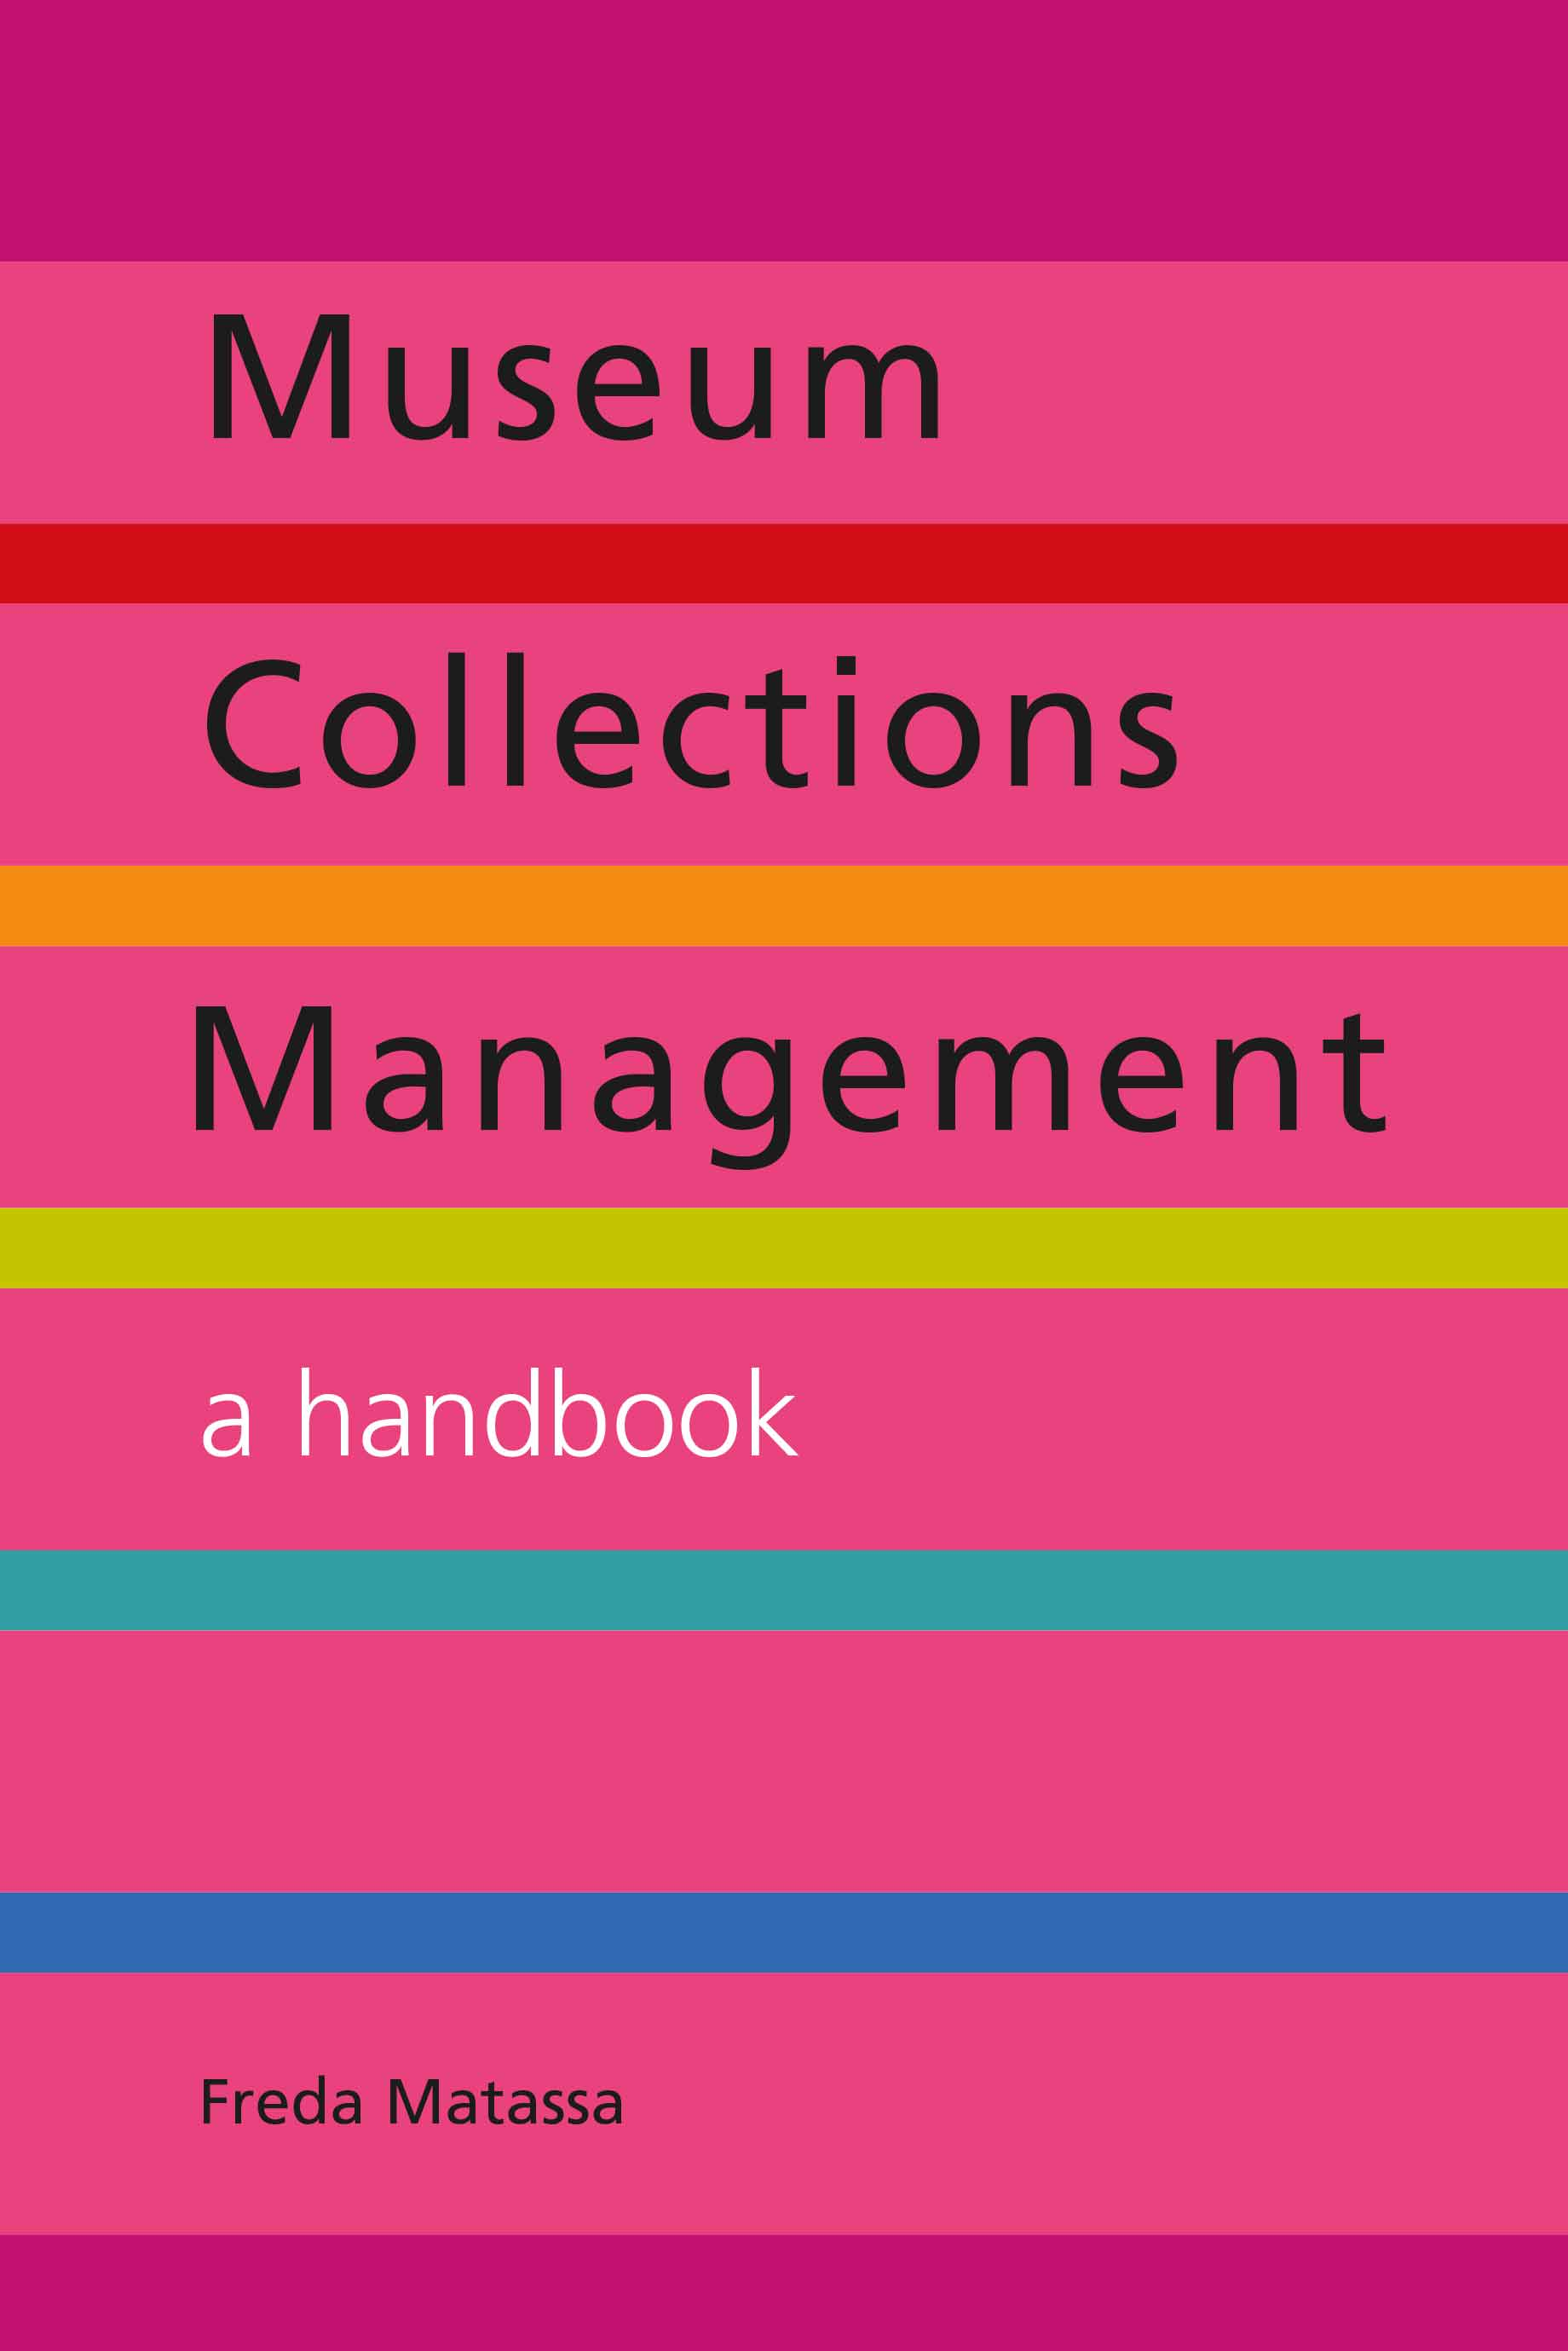 Museum Collections Management: A Handbook by Freda Matassa